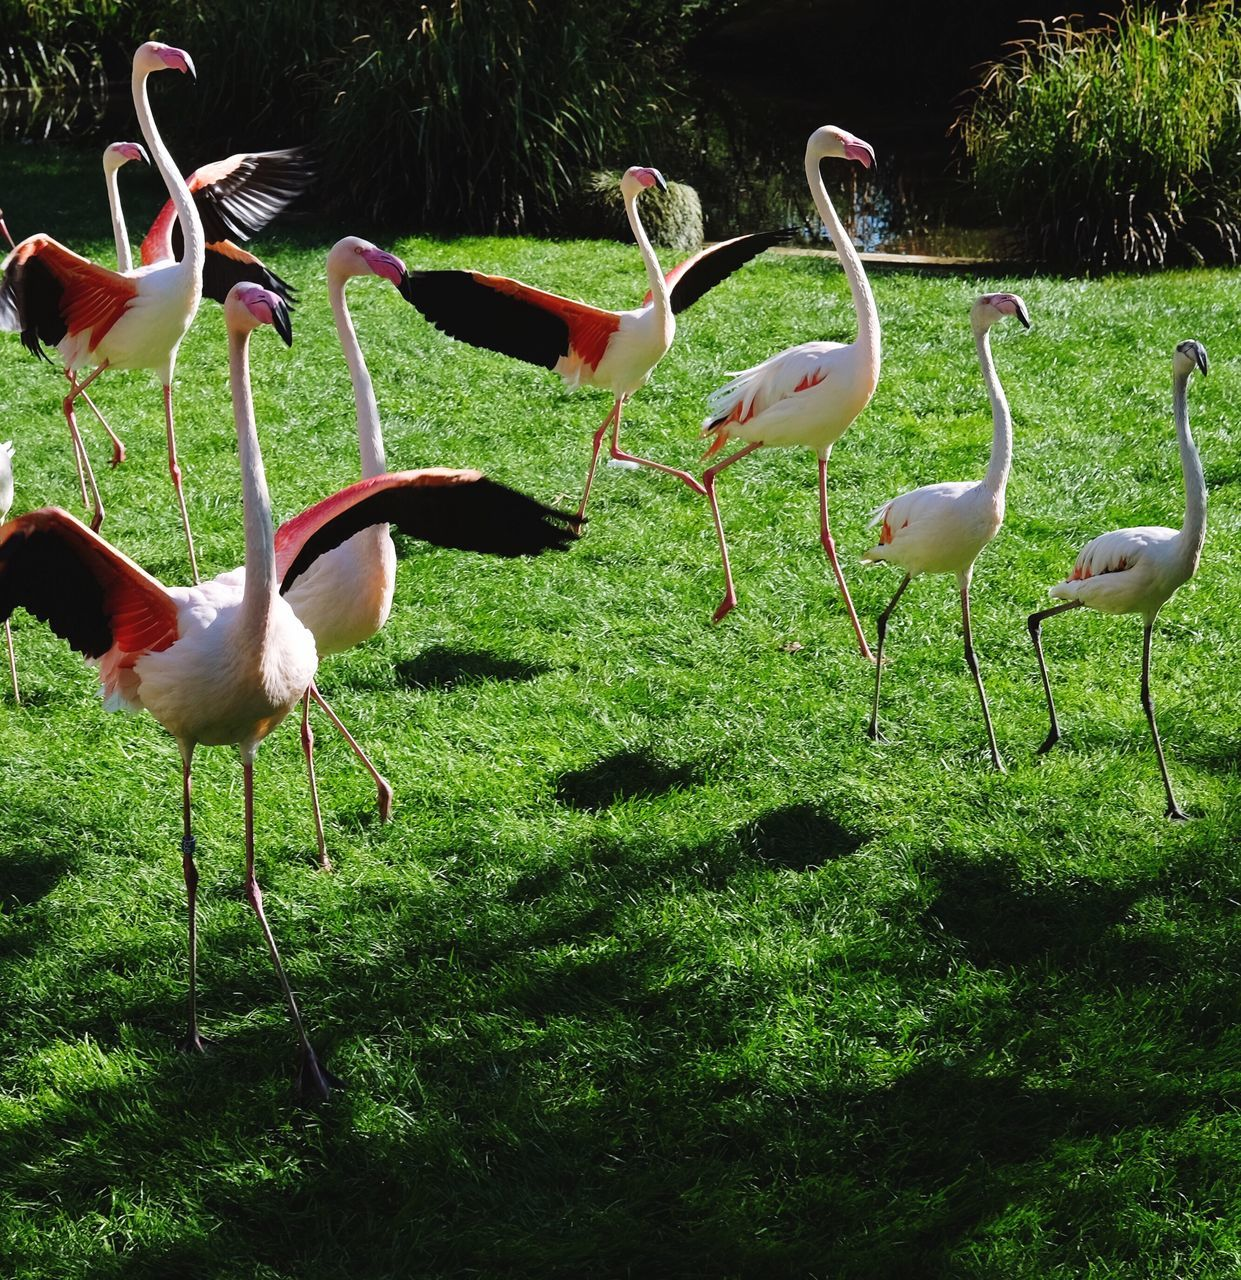 animal themes, bird, animals in the wild, nature, no people, animal wildlife, grass, outdoors, day, beauty in nature, flamingo, water